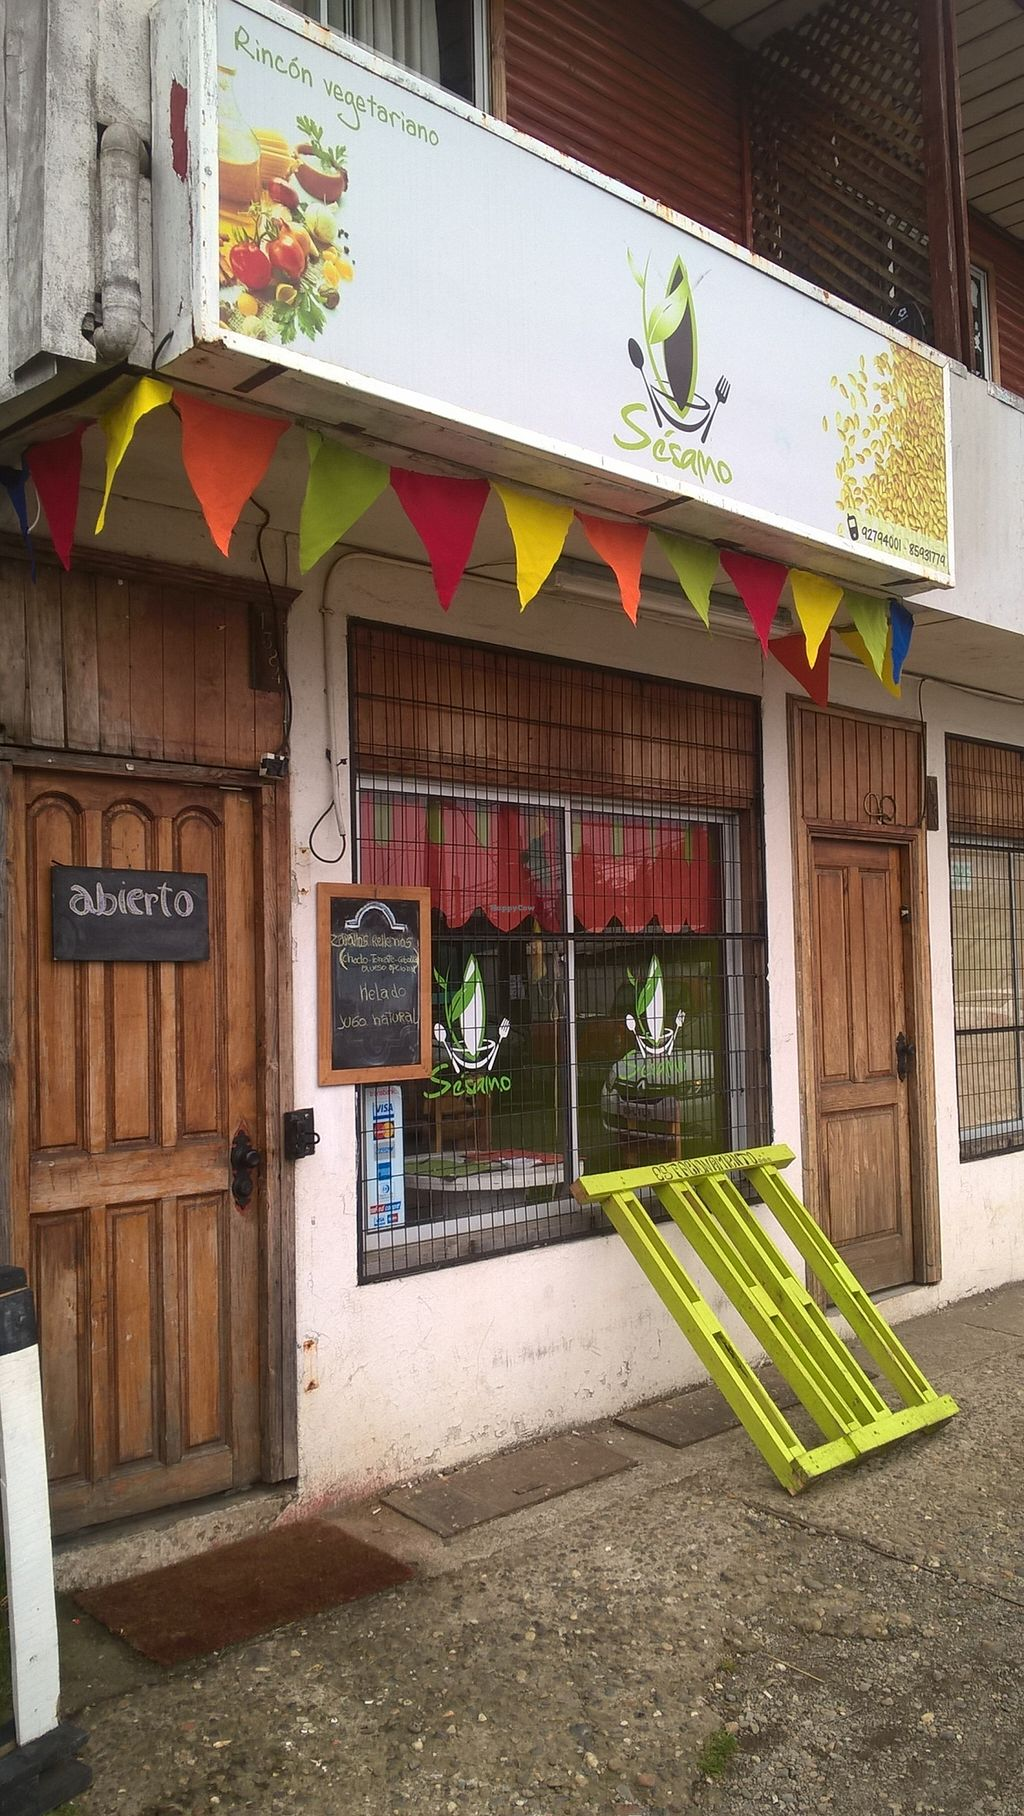 """Photo of CLOSED: Sesamo Rincon Vegetariano  by <a href=""""/members/profile/arya00"""">arya00</a> <br/>lentil burger <br/> November 27, 2015  - <a href='/contact/abuse/image/62905/126280'>Report</a>"""